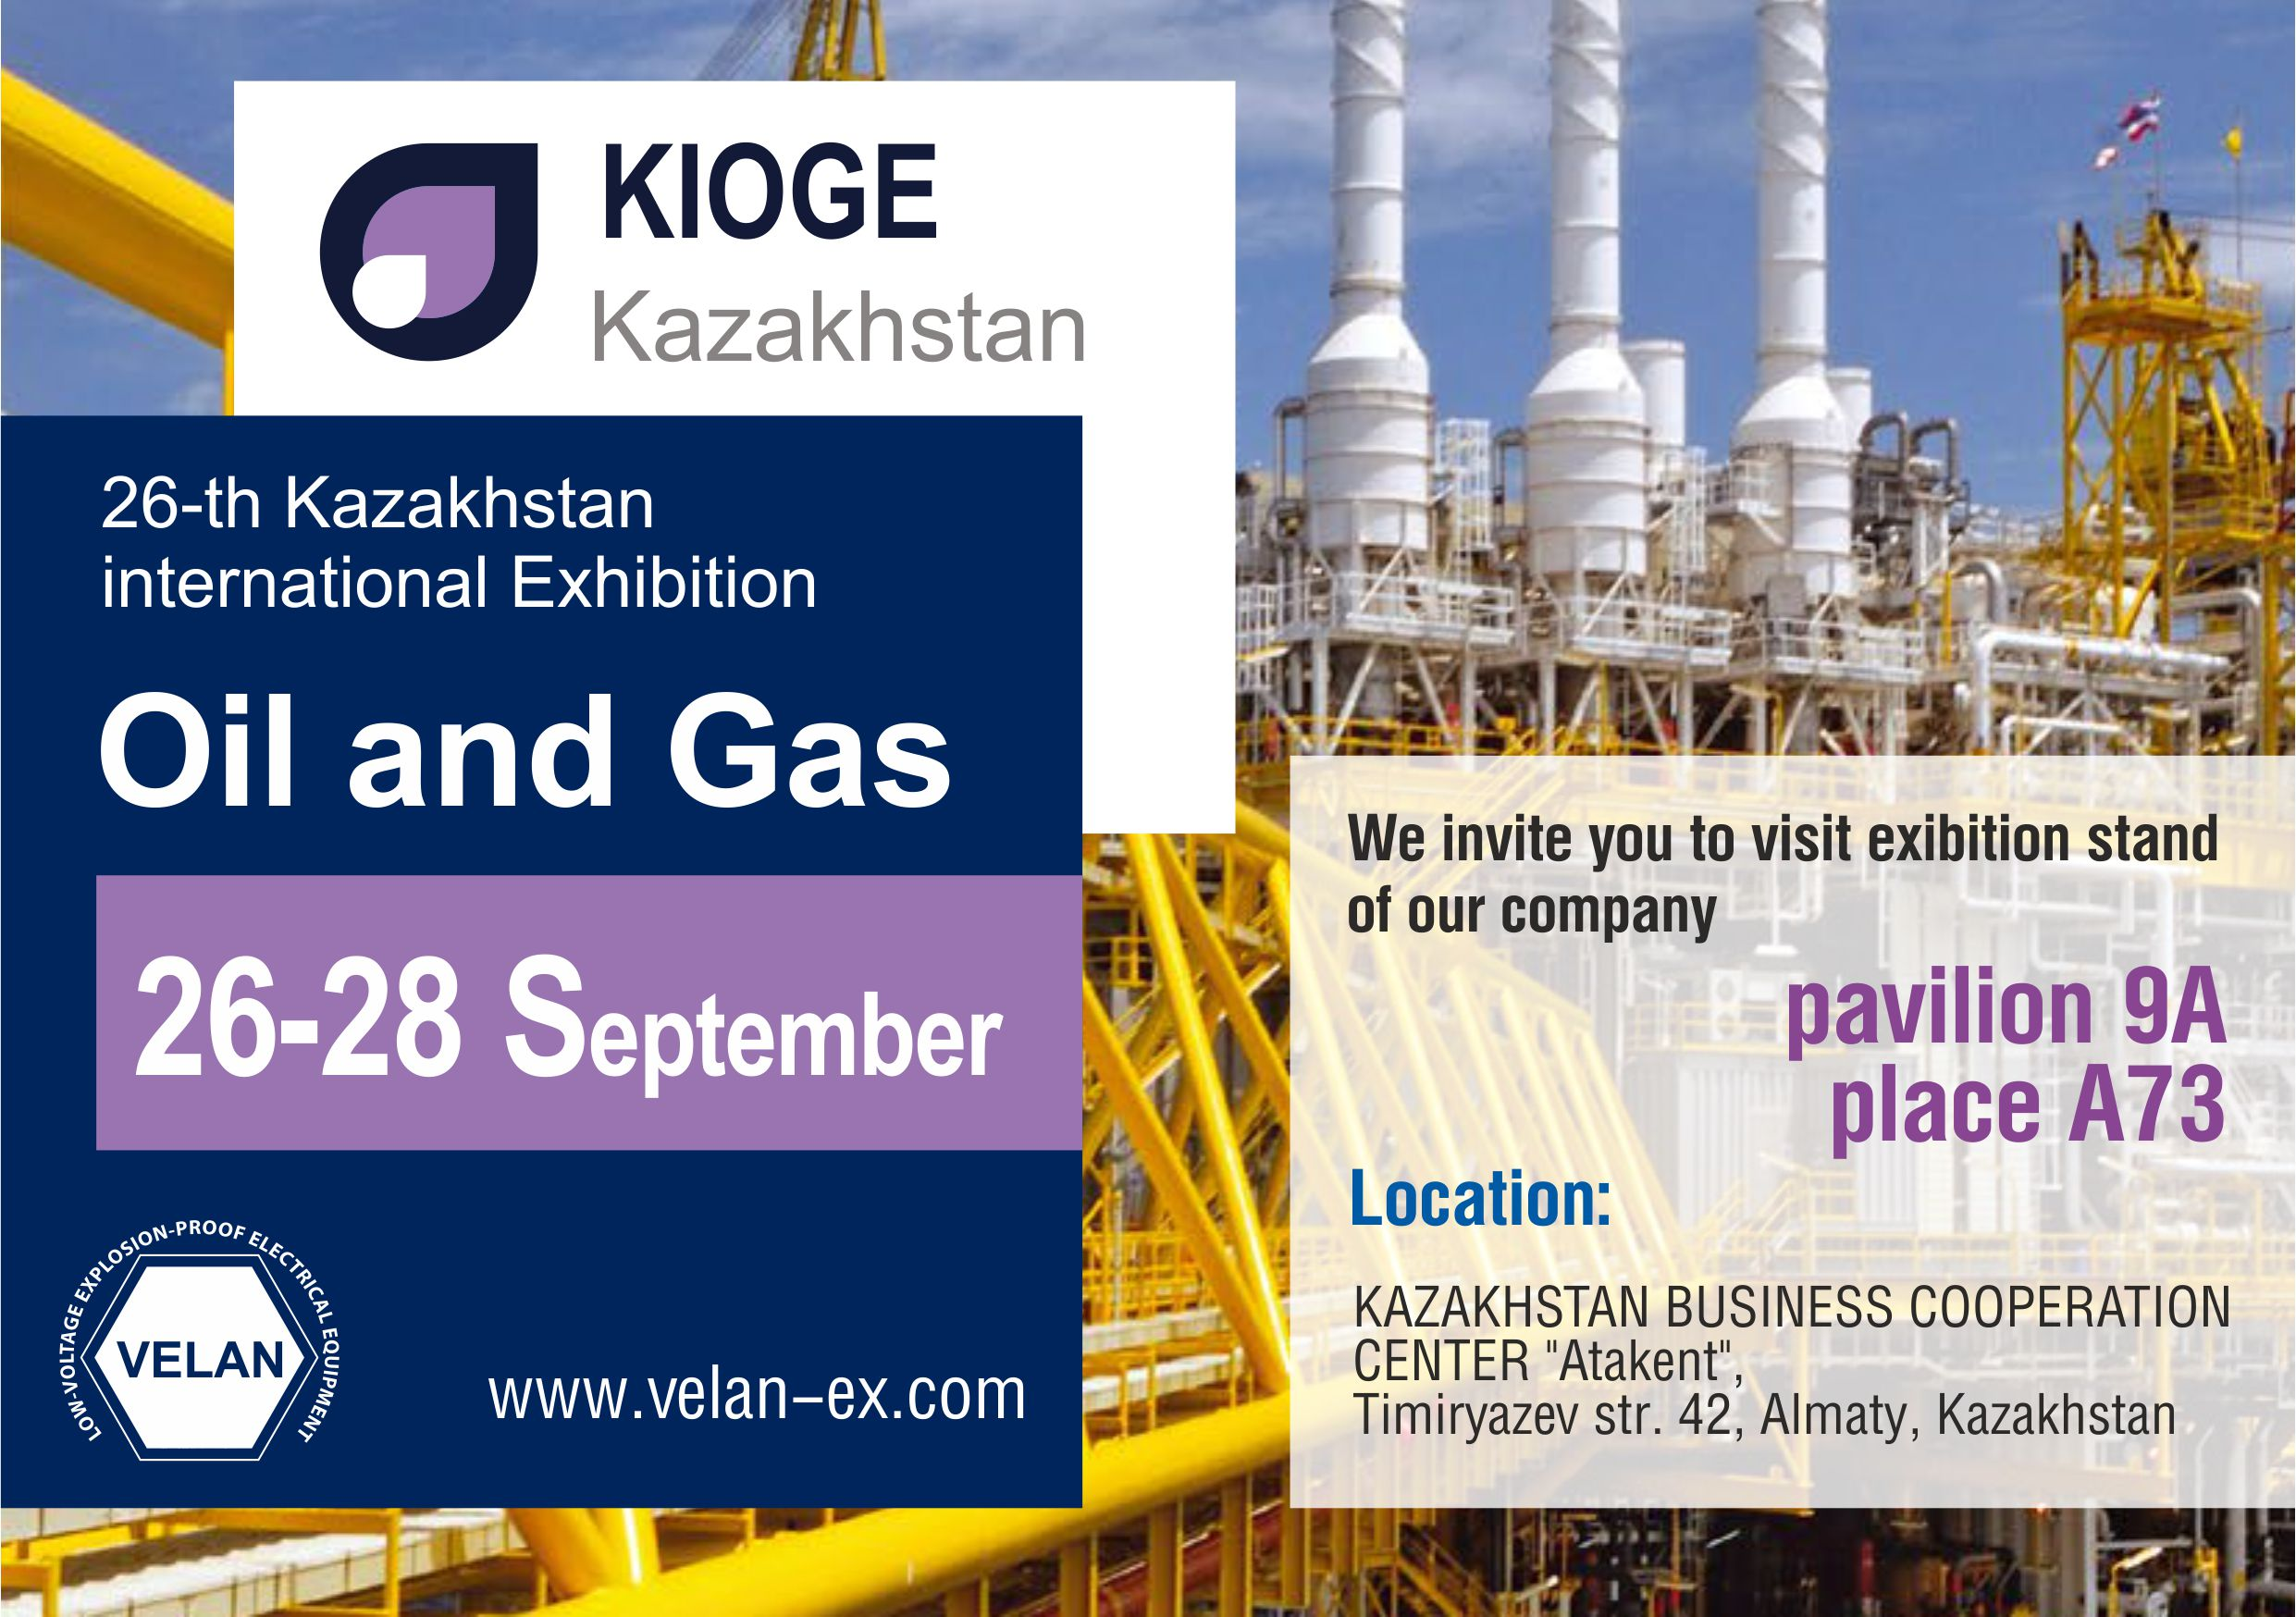 "26-th Kazakhstan international Exhibition and conference ""Oil and Gas"", Almaty, Kazakhstan"